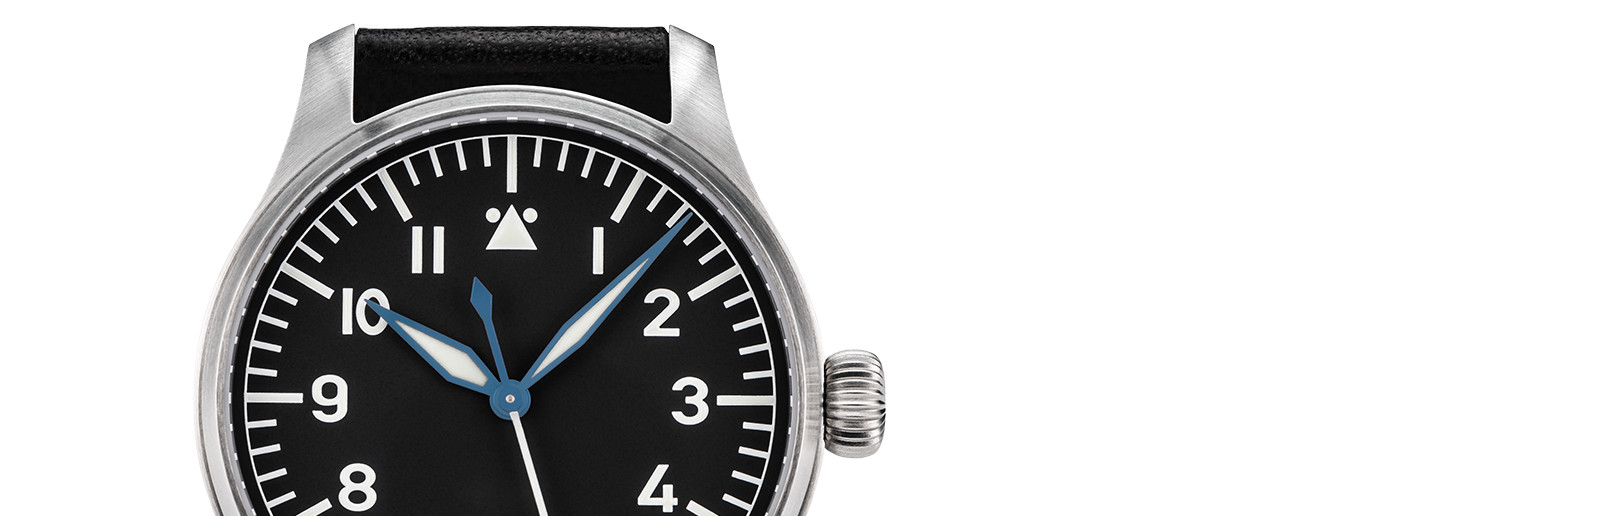 Stowa embraces the Apple watch